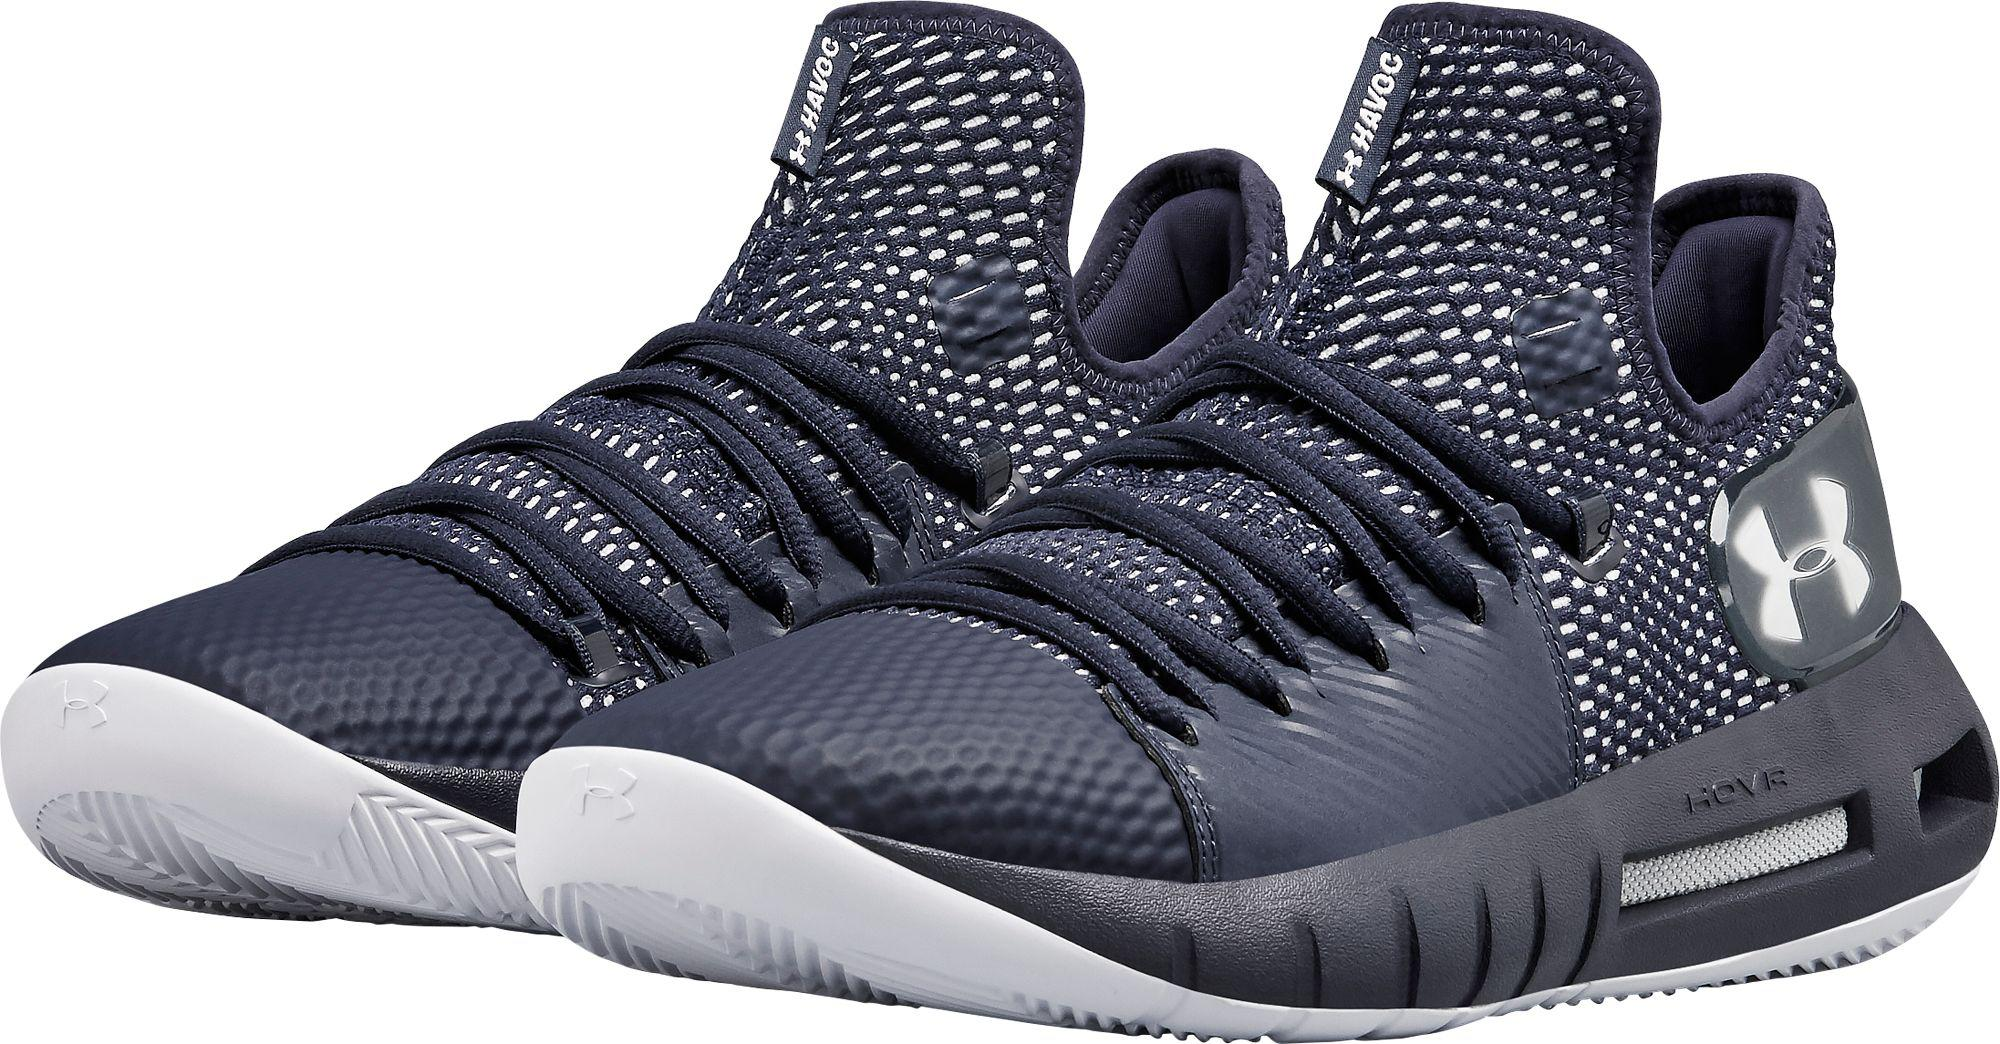 reputable site 603df aa541 Men's Blue Hovr Havoc Low Basketball Shoes